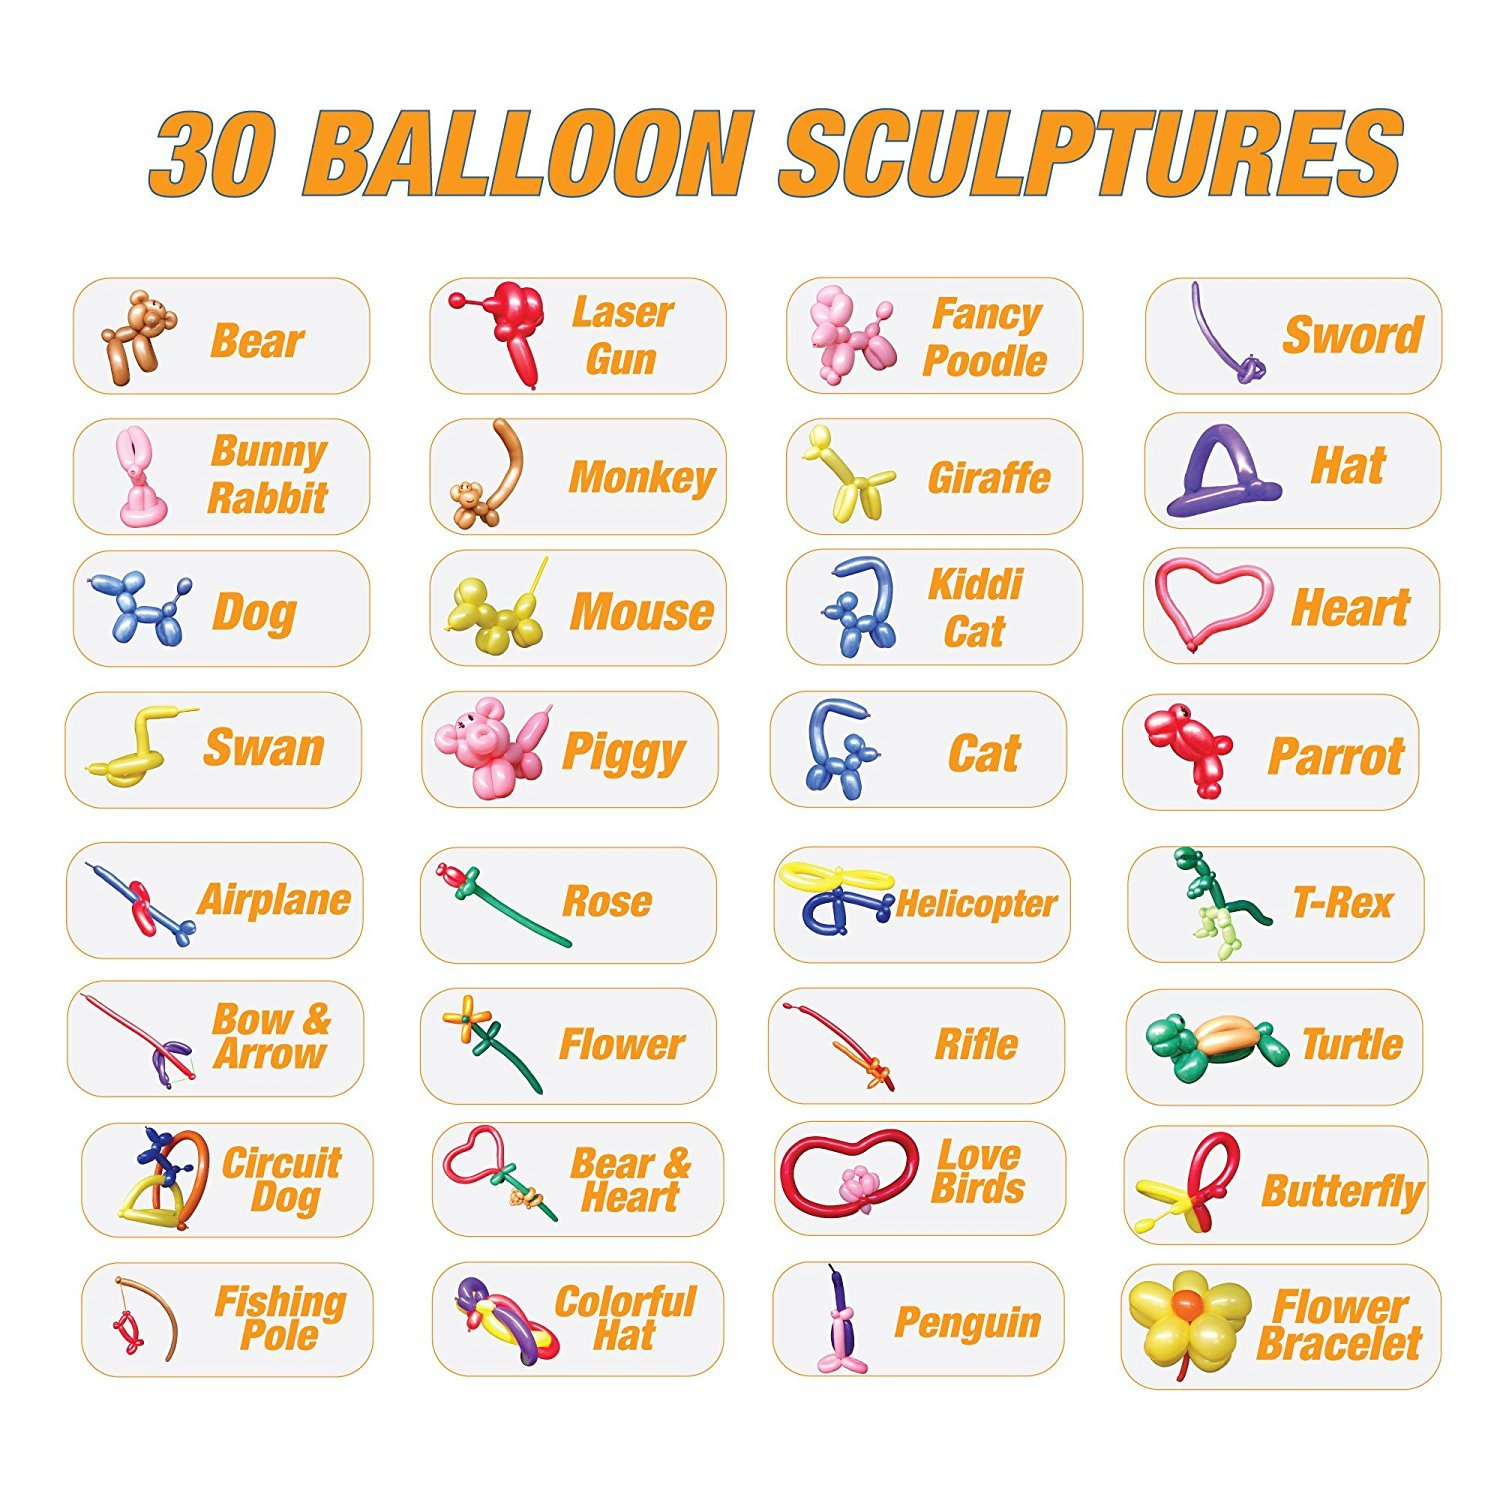 Diy Balloon Animal Kit For Beginners Twisting Modeling Balloon Kit 30 Sculptures 100 Balloons For Balloon Animals Pump Manual Dvd Party Fun Activity Gift For Teens Boys And Girls